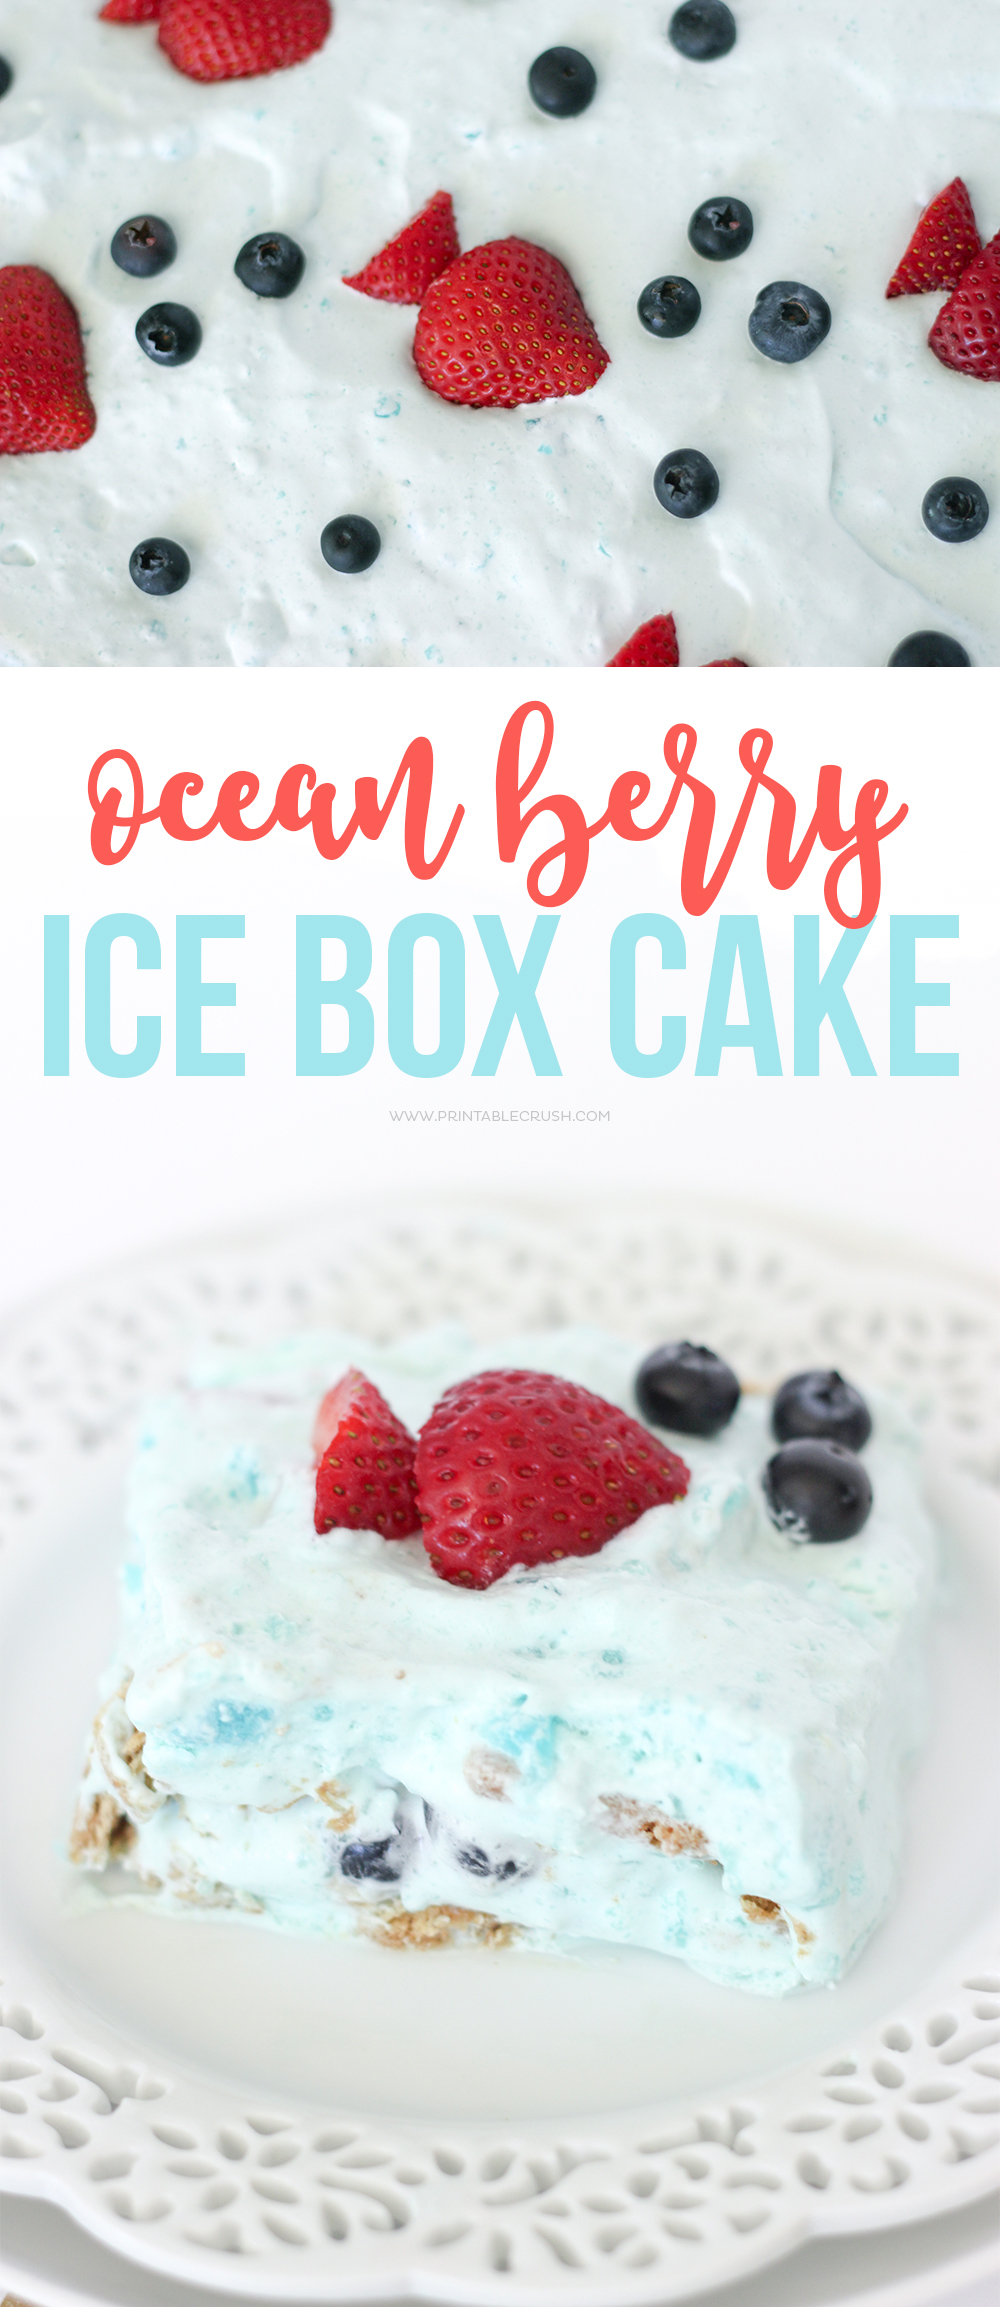 Serve this Ocean Berry Icebox Cake at your next ocean or beach themed party! It's really easy to make and anyone can decorate it!